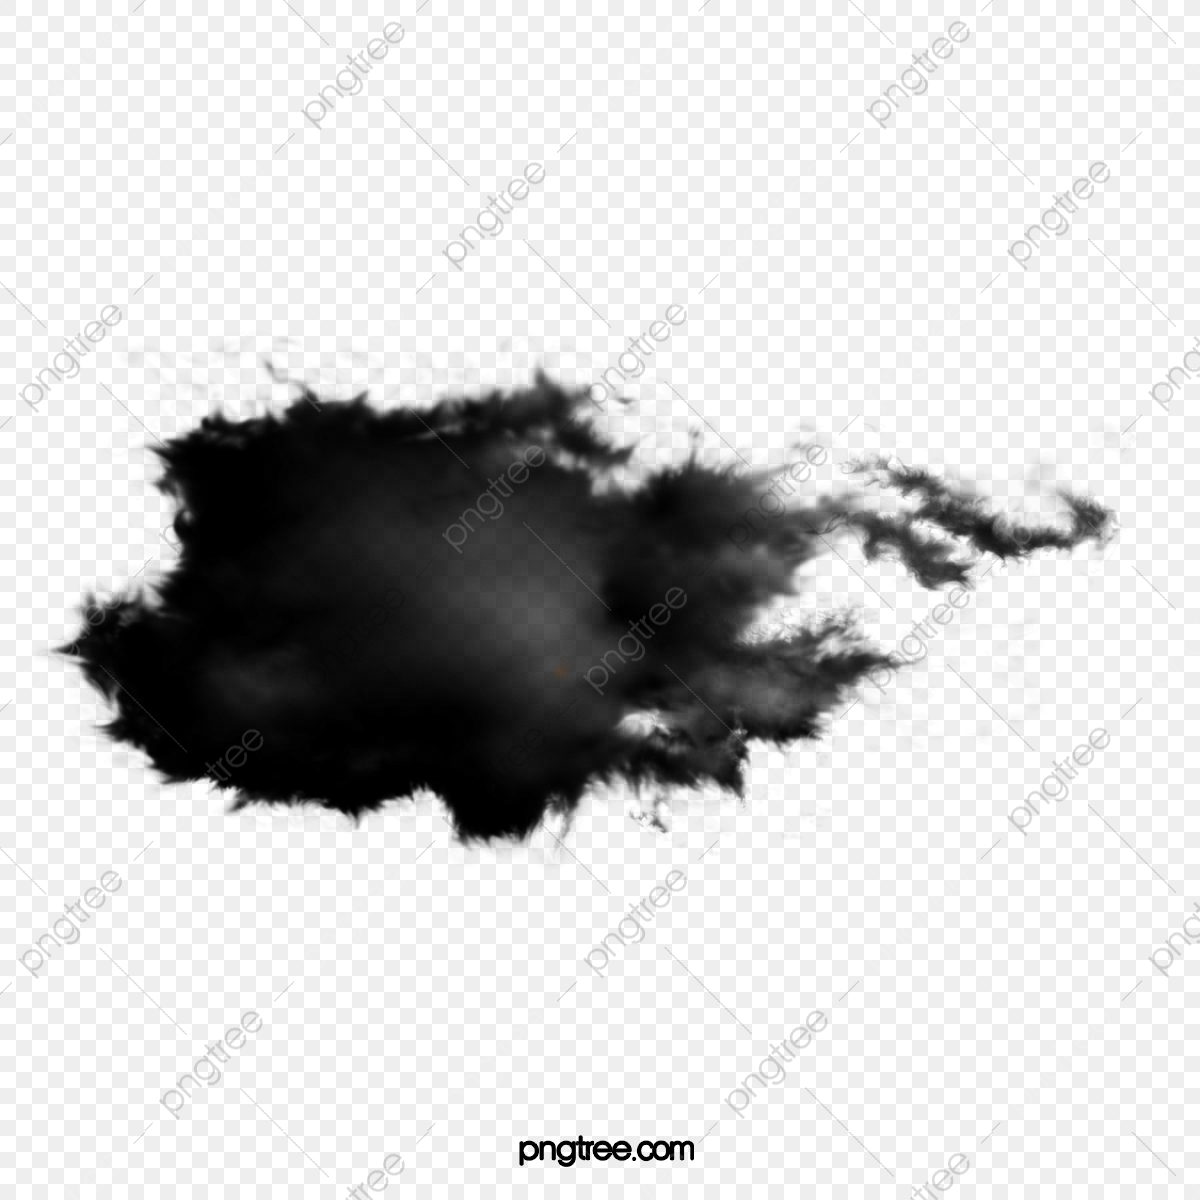 Dark Clouds, Meteorological, The Weather, Clouds PNG Transparent.